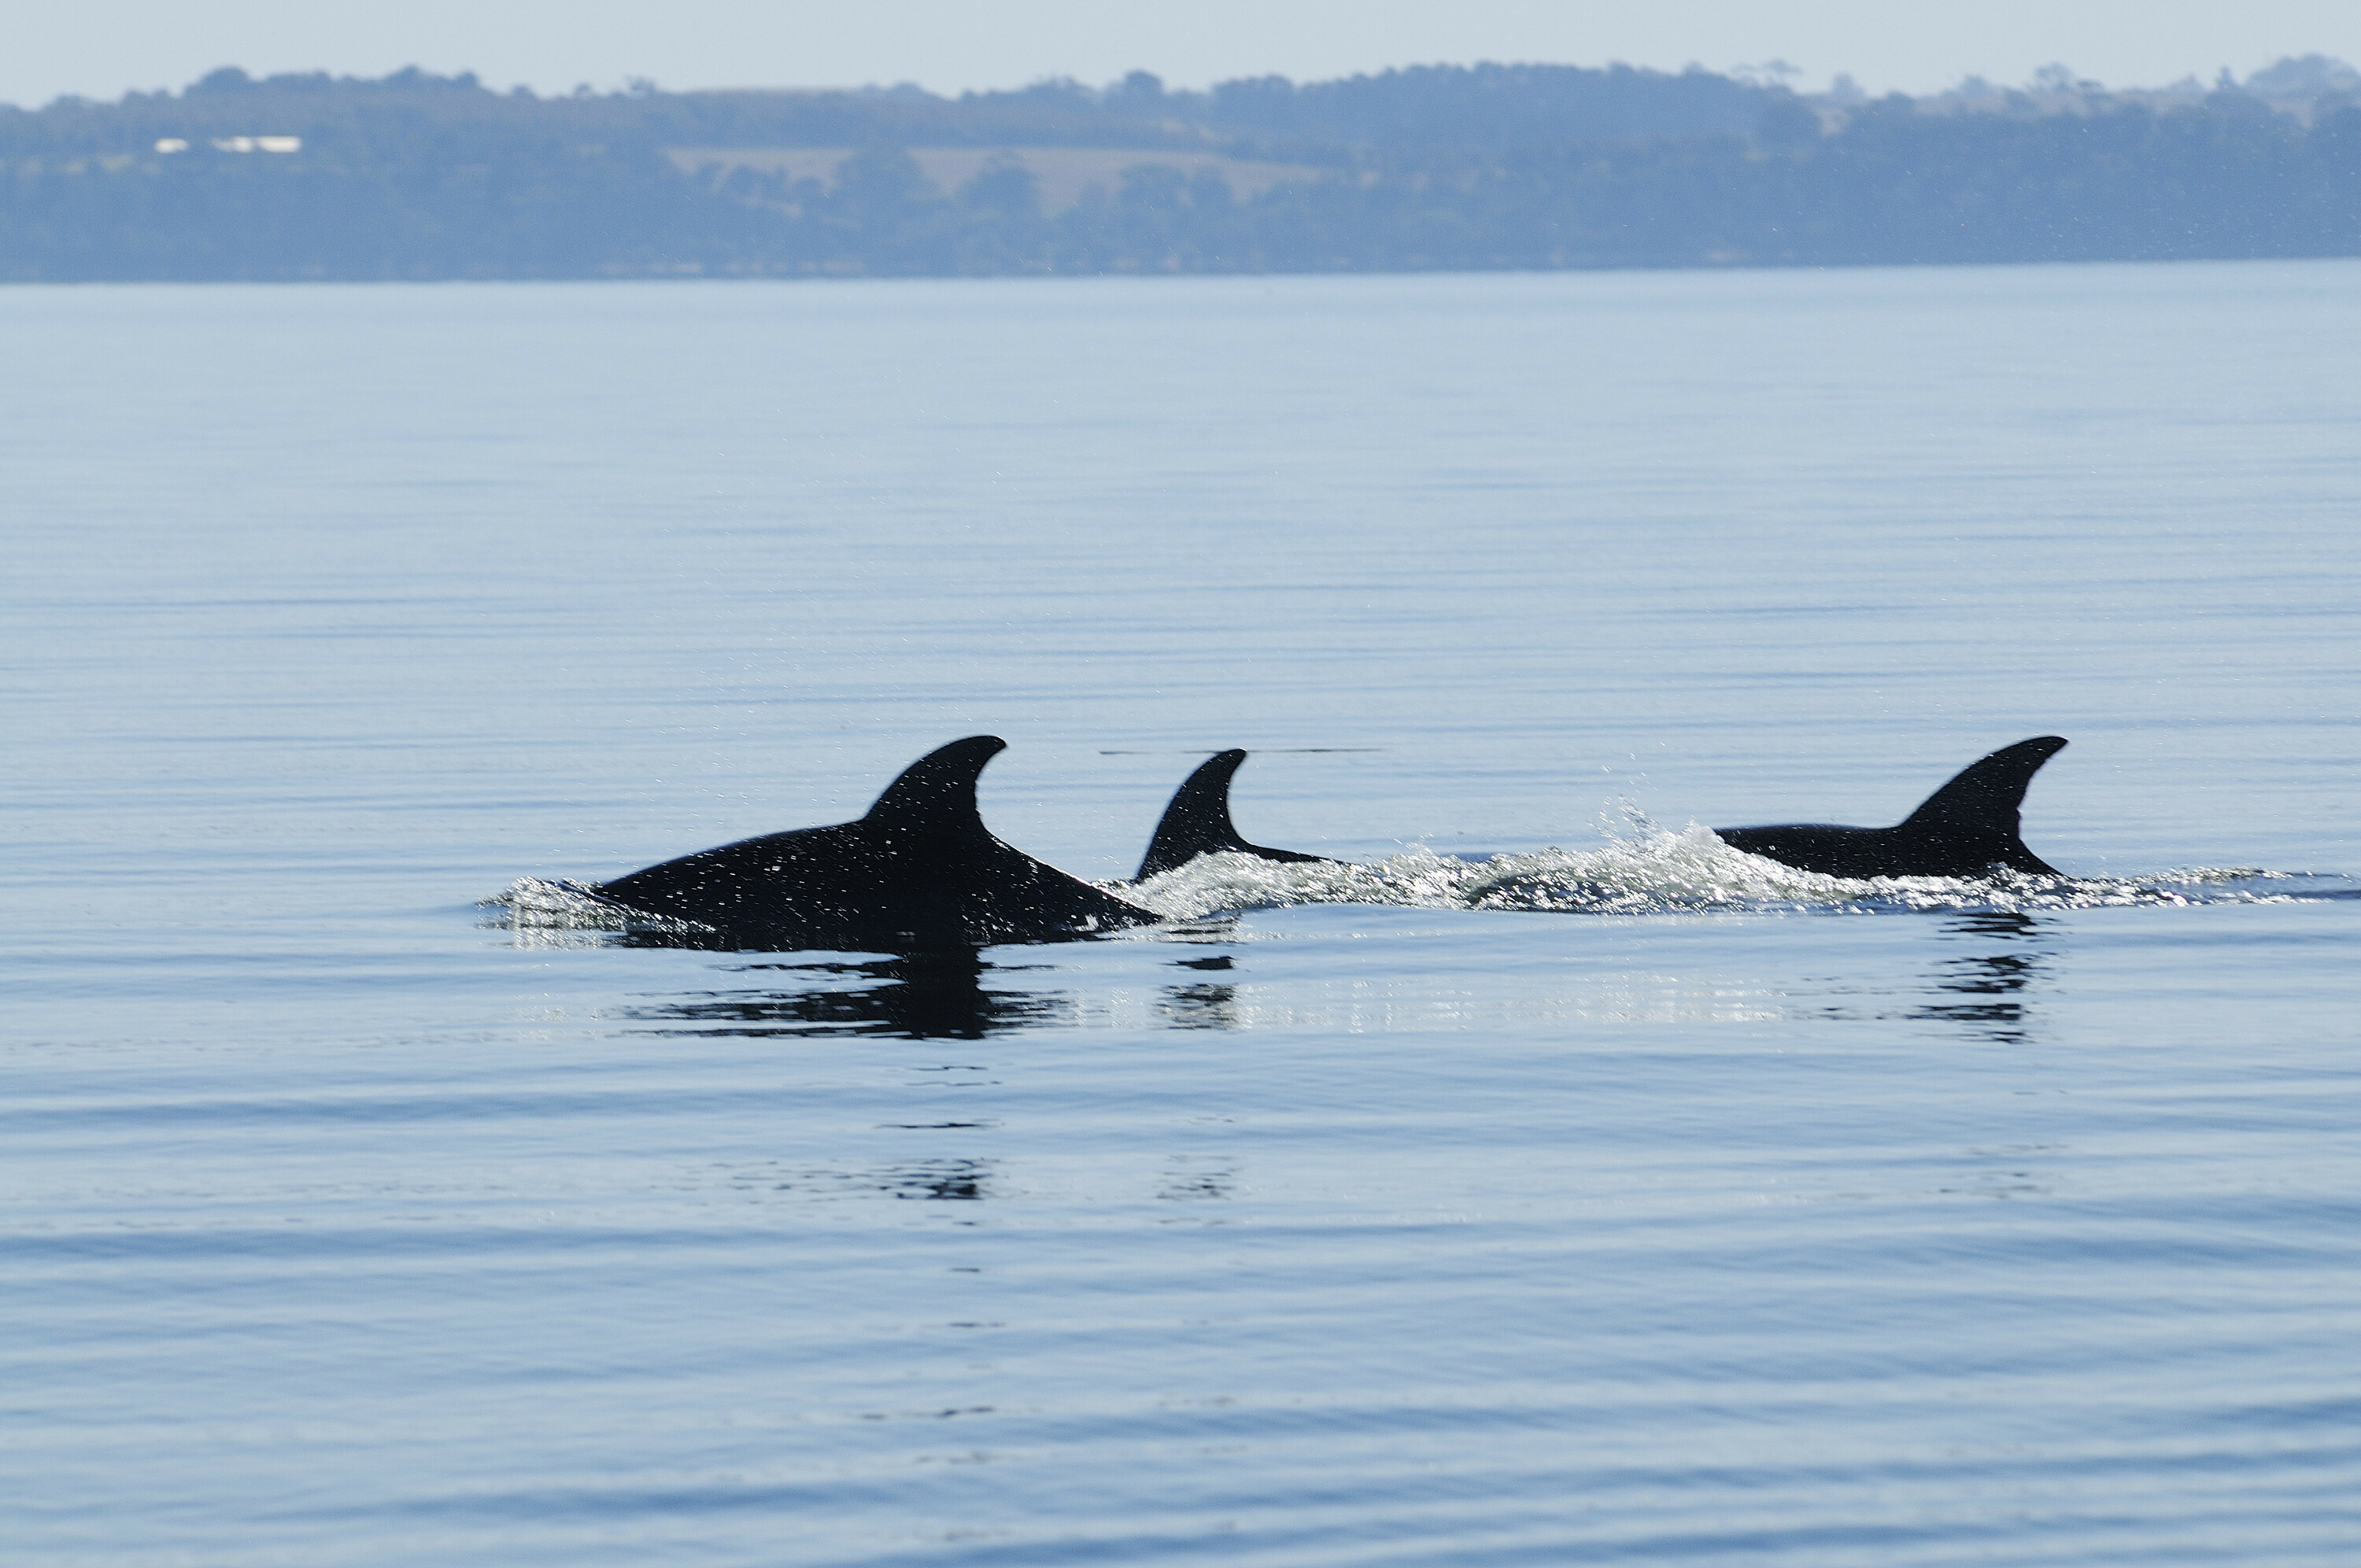 Dolphins at Metung, Gippsland